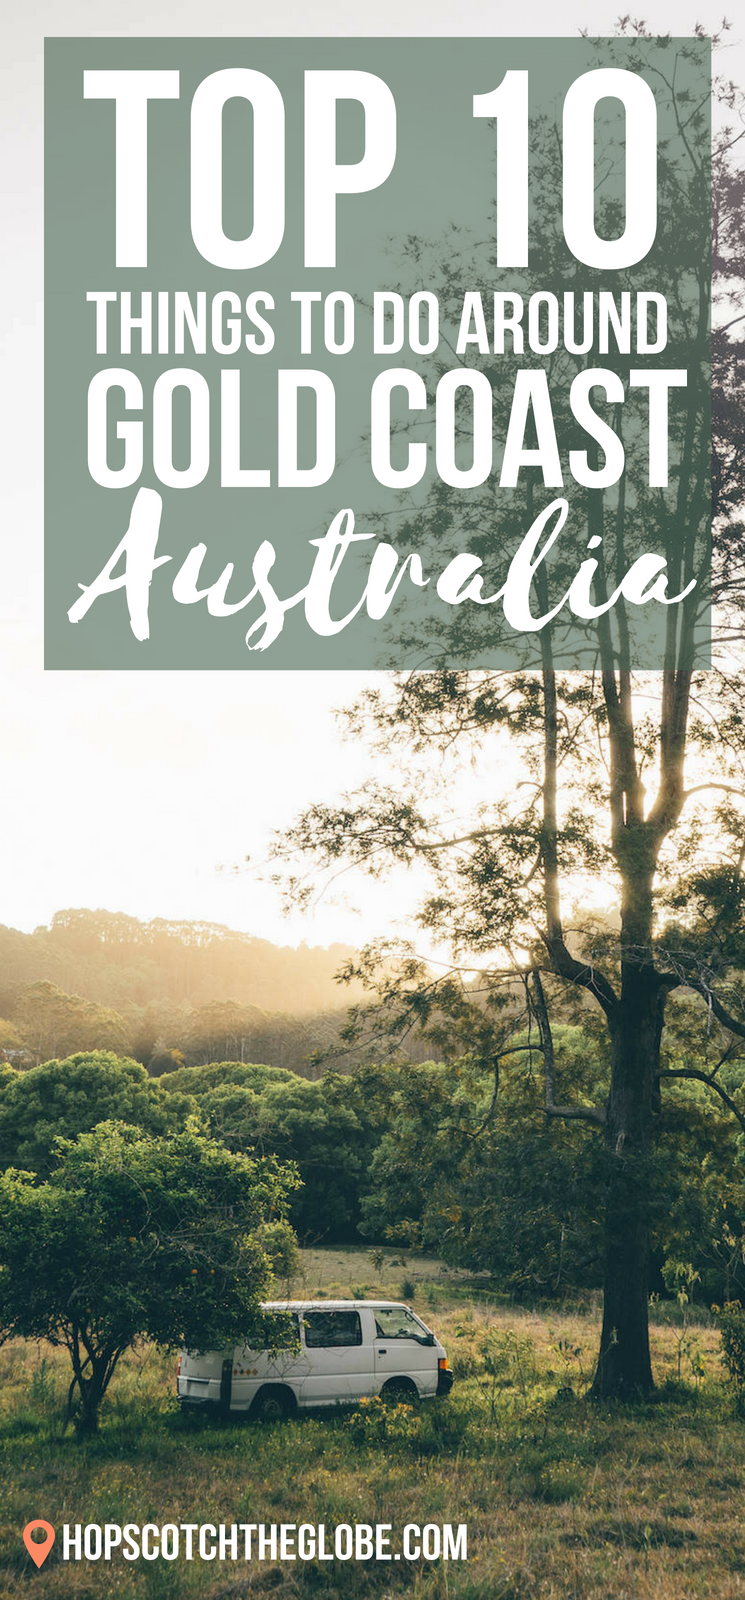 Top 10 Things to Do In and Around Gold Coast, Australia